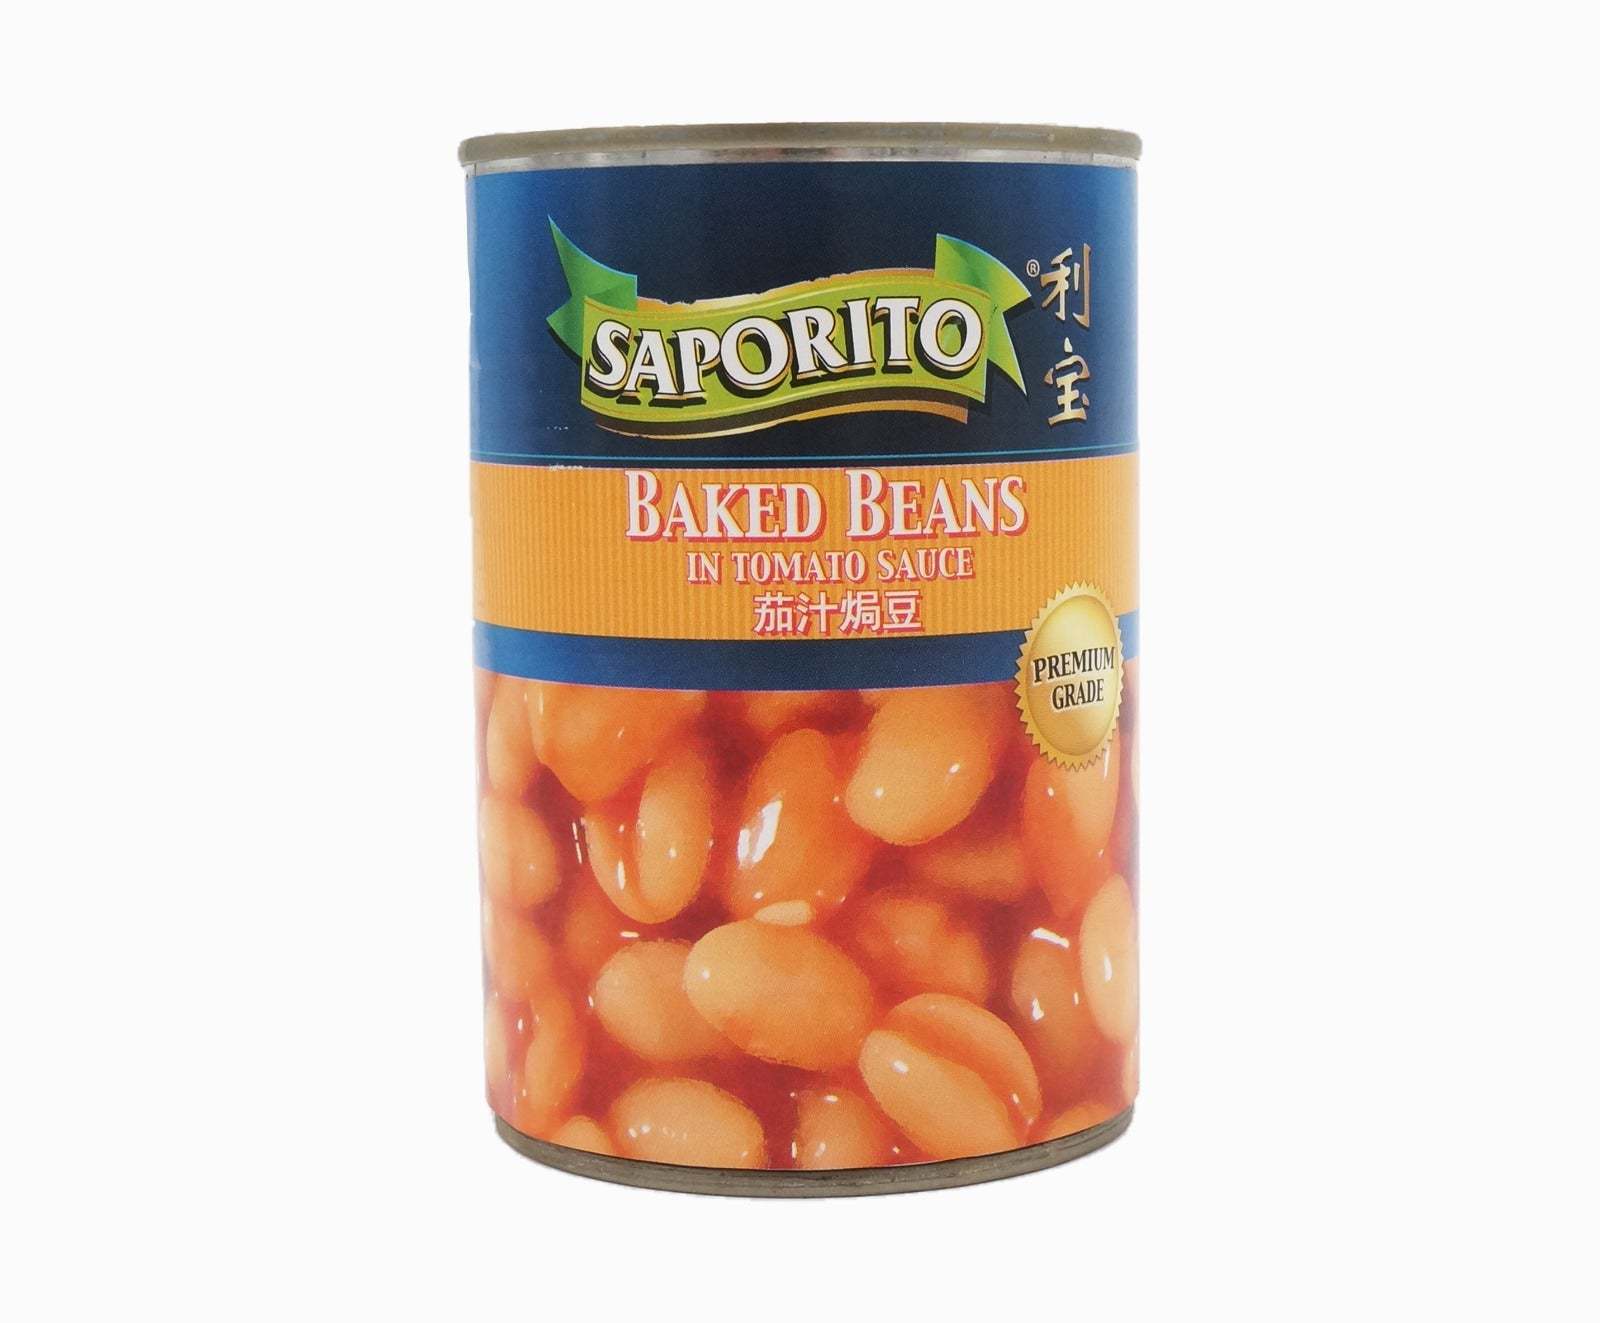 Saporito Baked Beans in Tomato Sauce (420g – Piece)